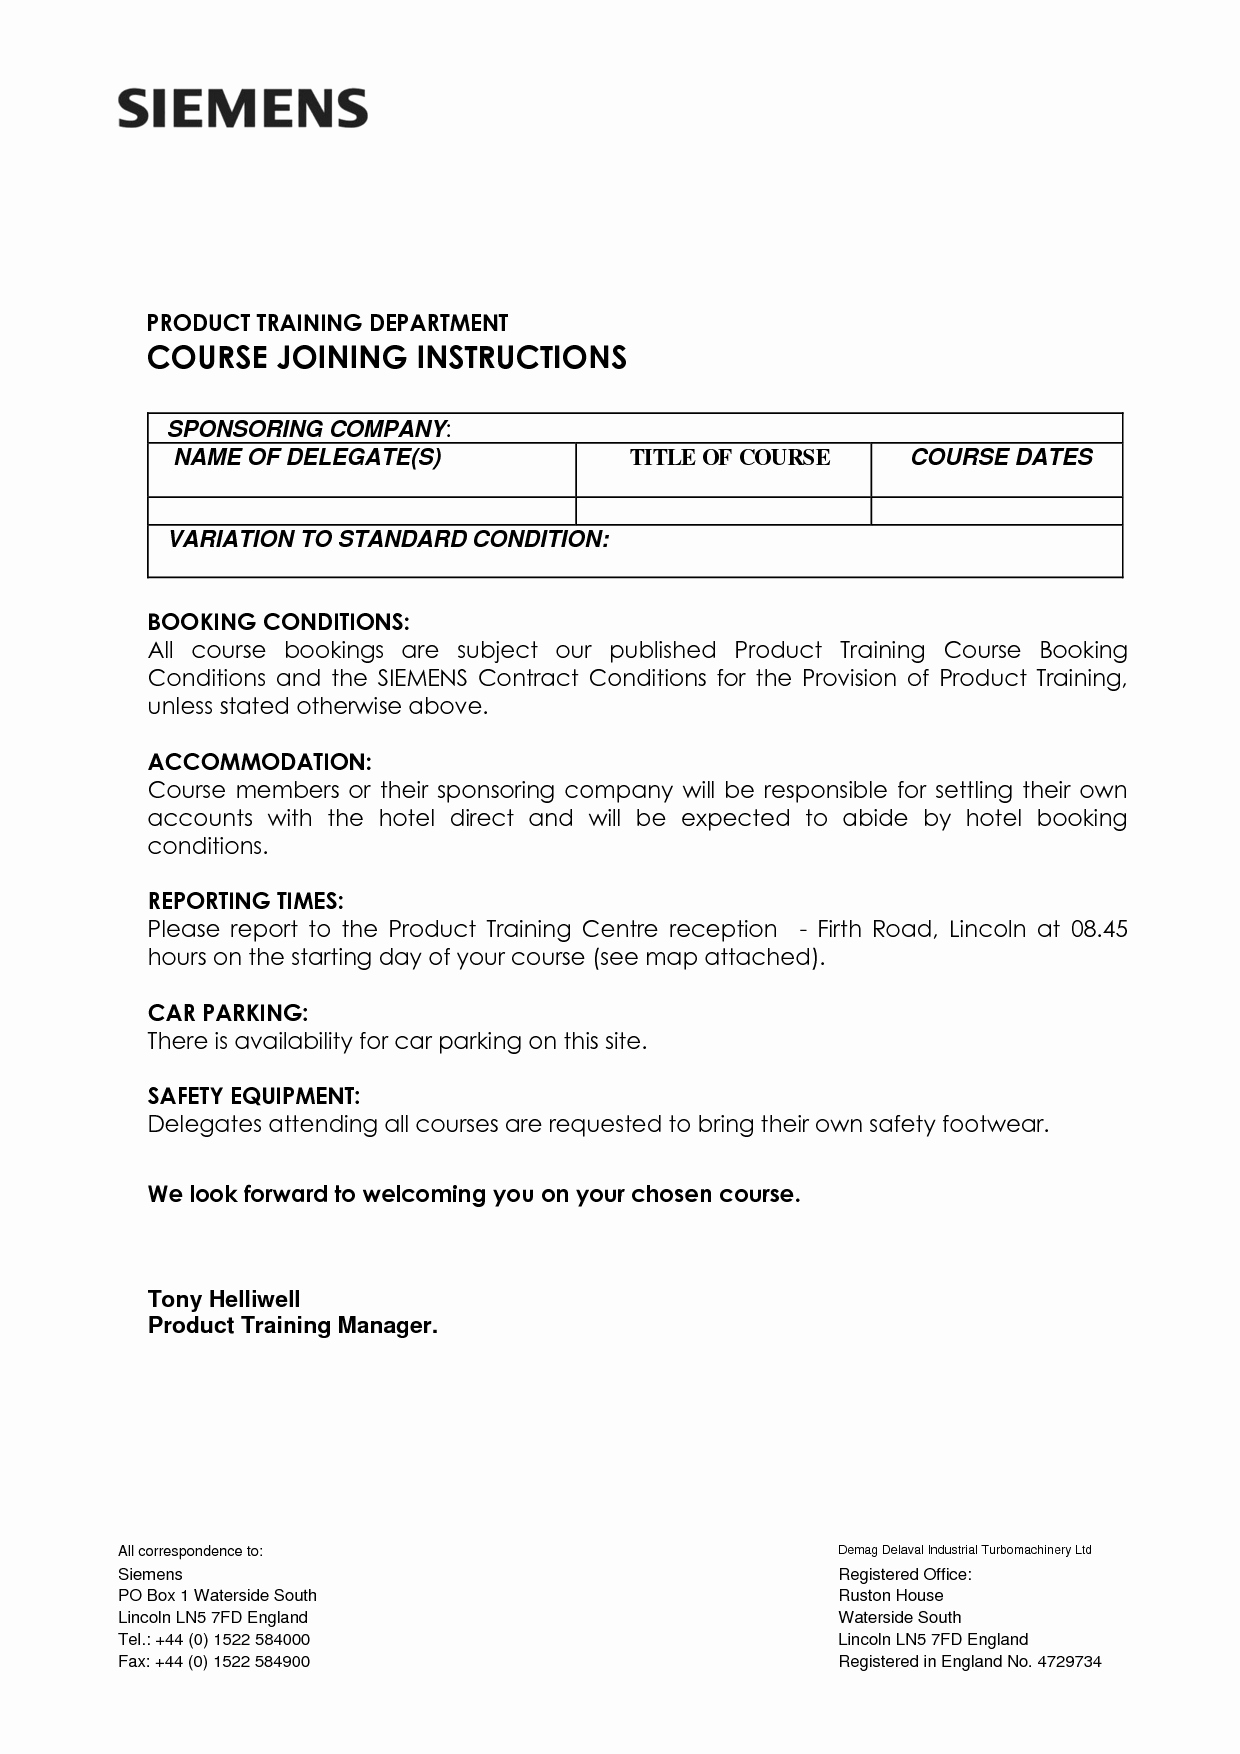 Business Letter format Template Word Fresh Best S Of Business Letter Templates Word 2007